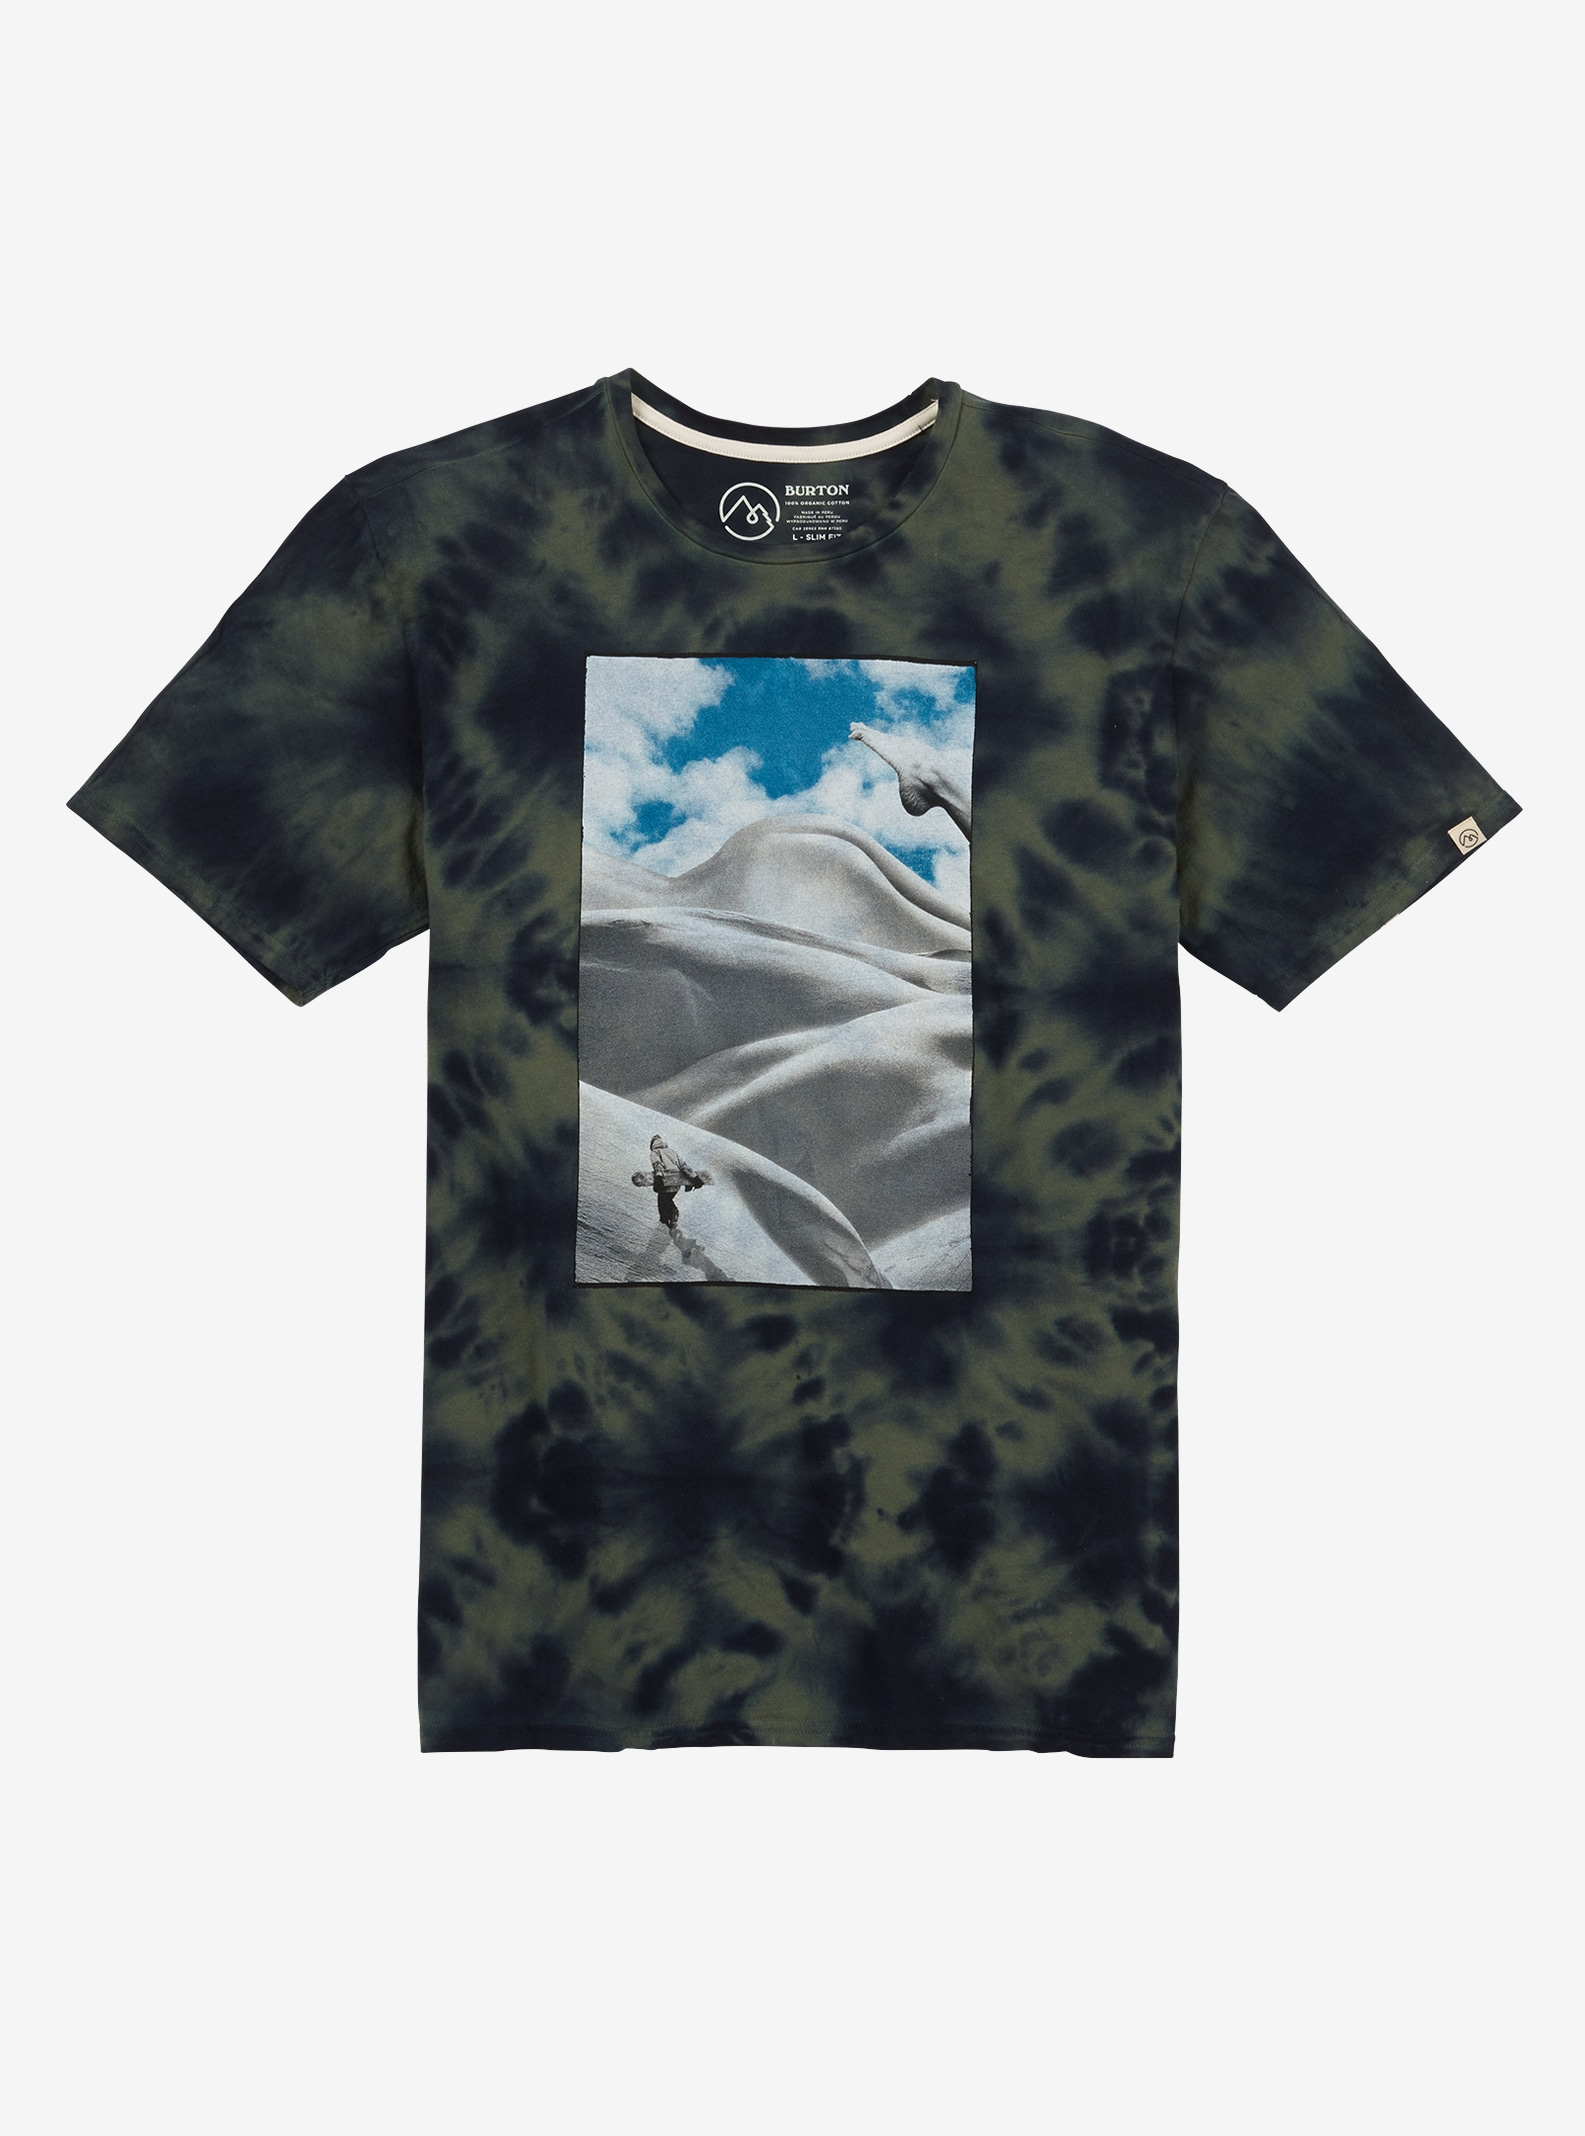 Men's Burton Butte Drift Short Sleeve T Shirt shown in Two Tone Tie Dye